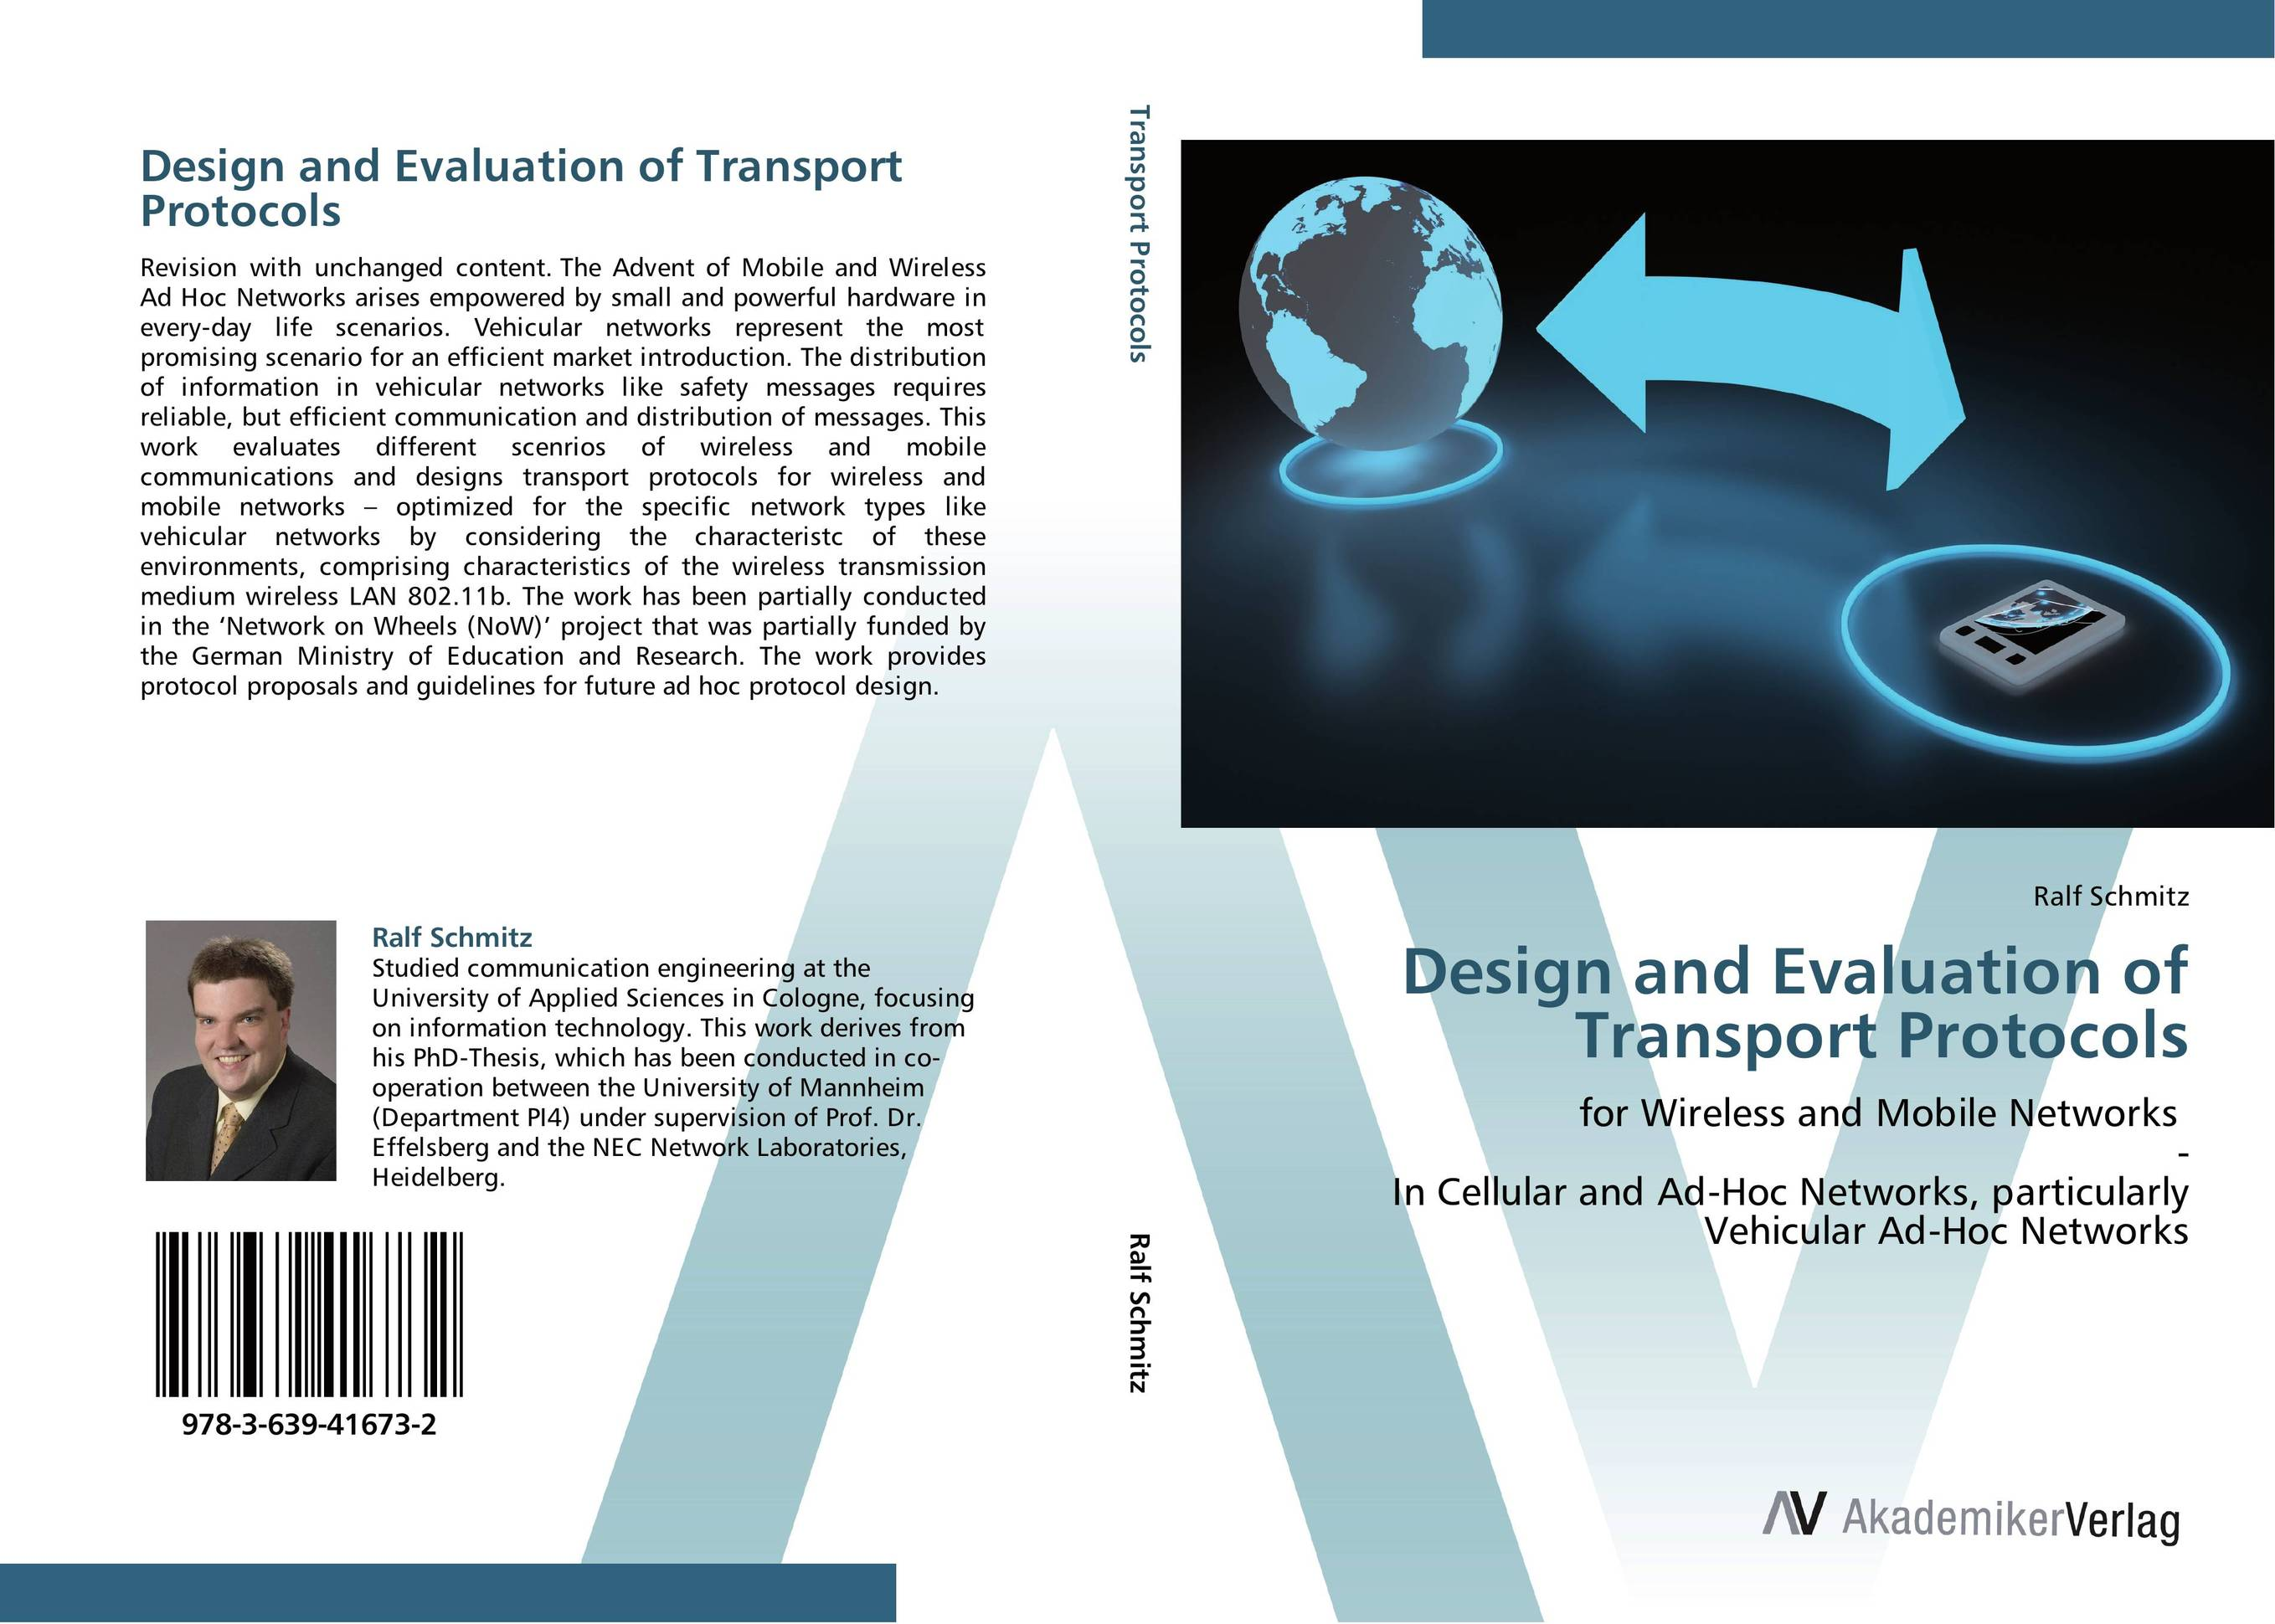 Design and Evaluation of Transport Protocols evaluation of aqueous solubility of hydroxamic acids by pls modelling